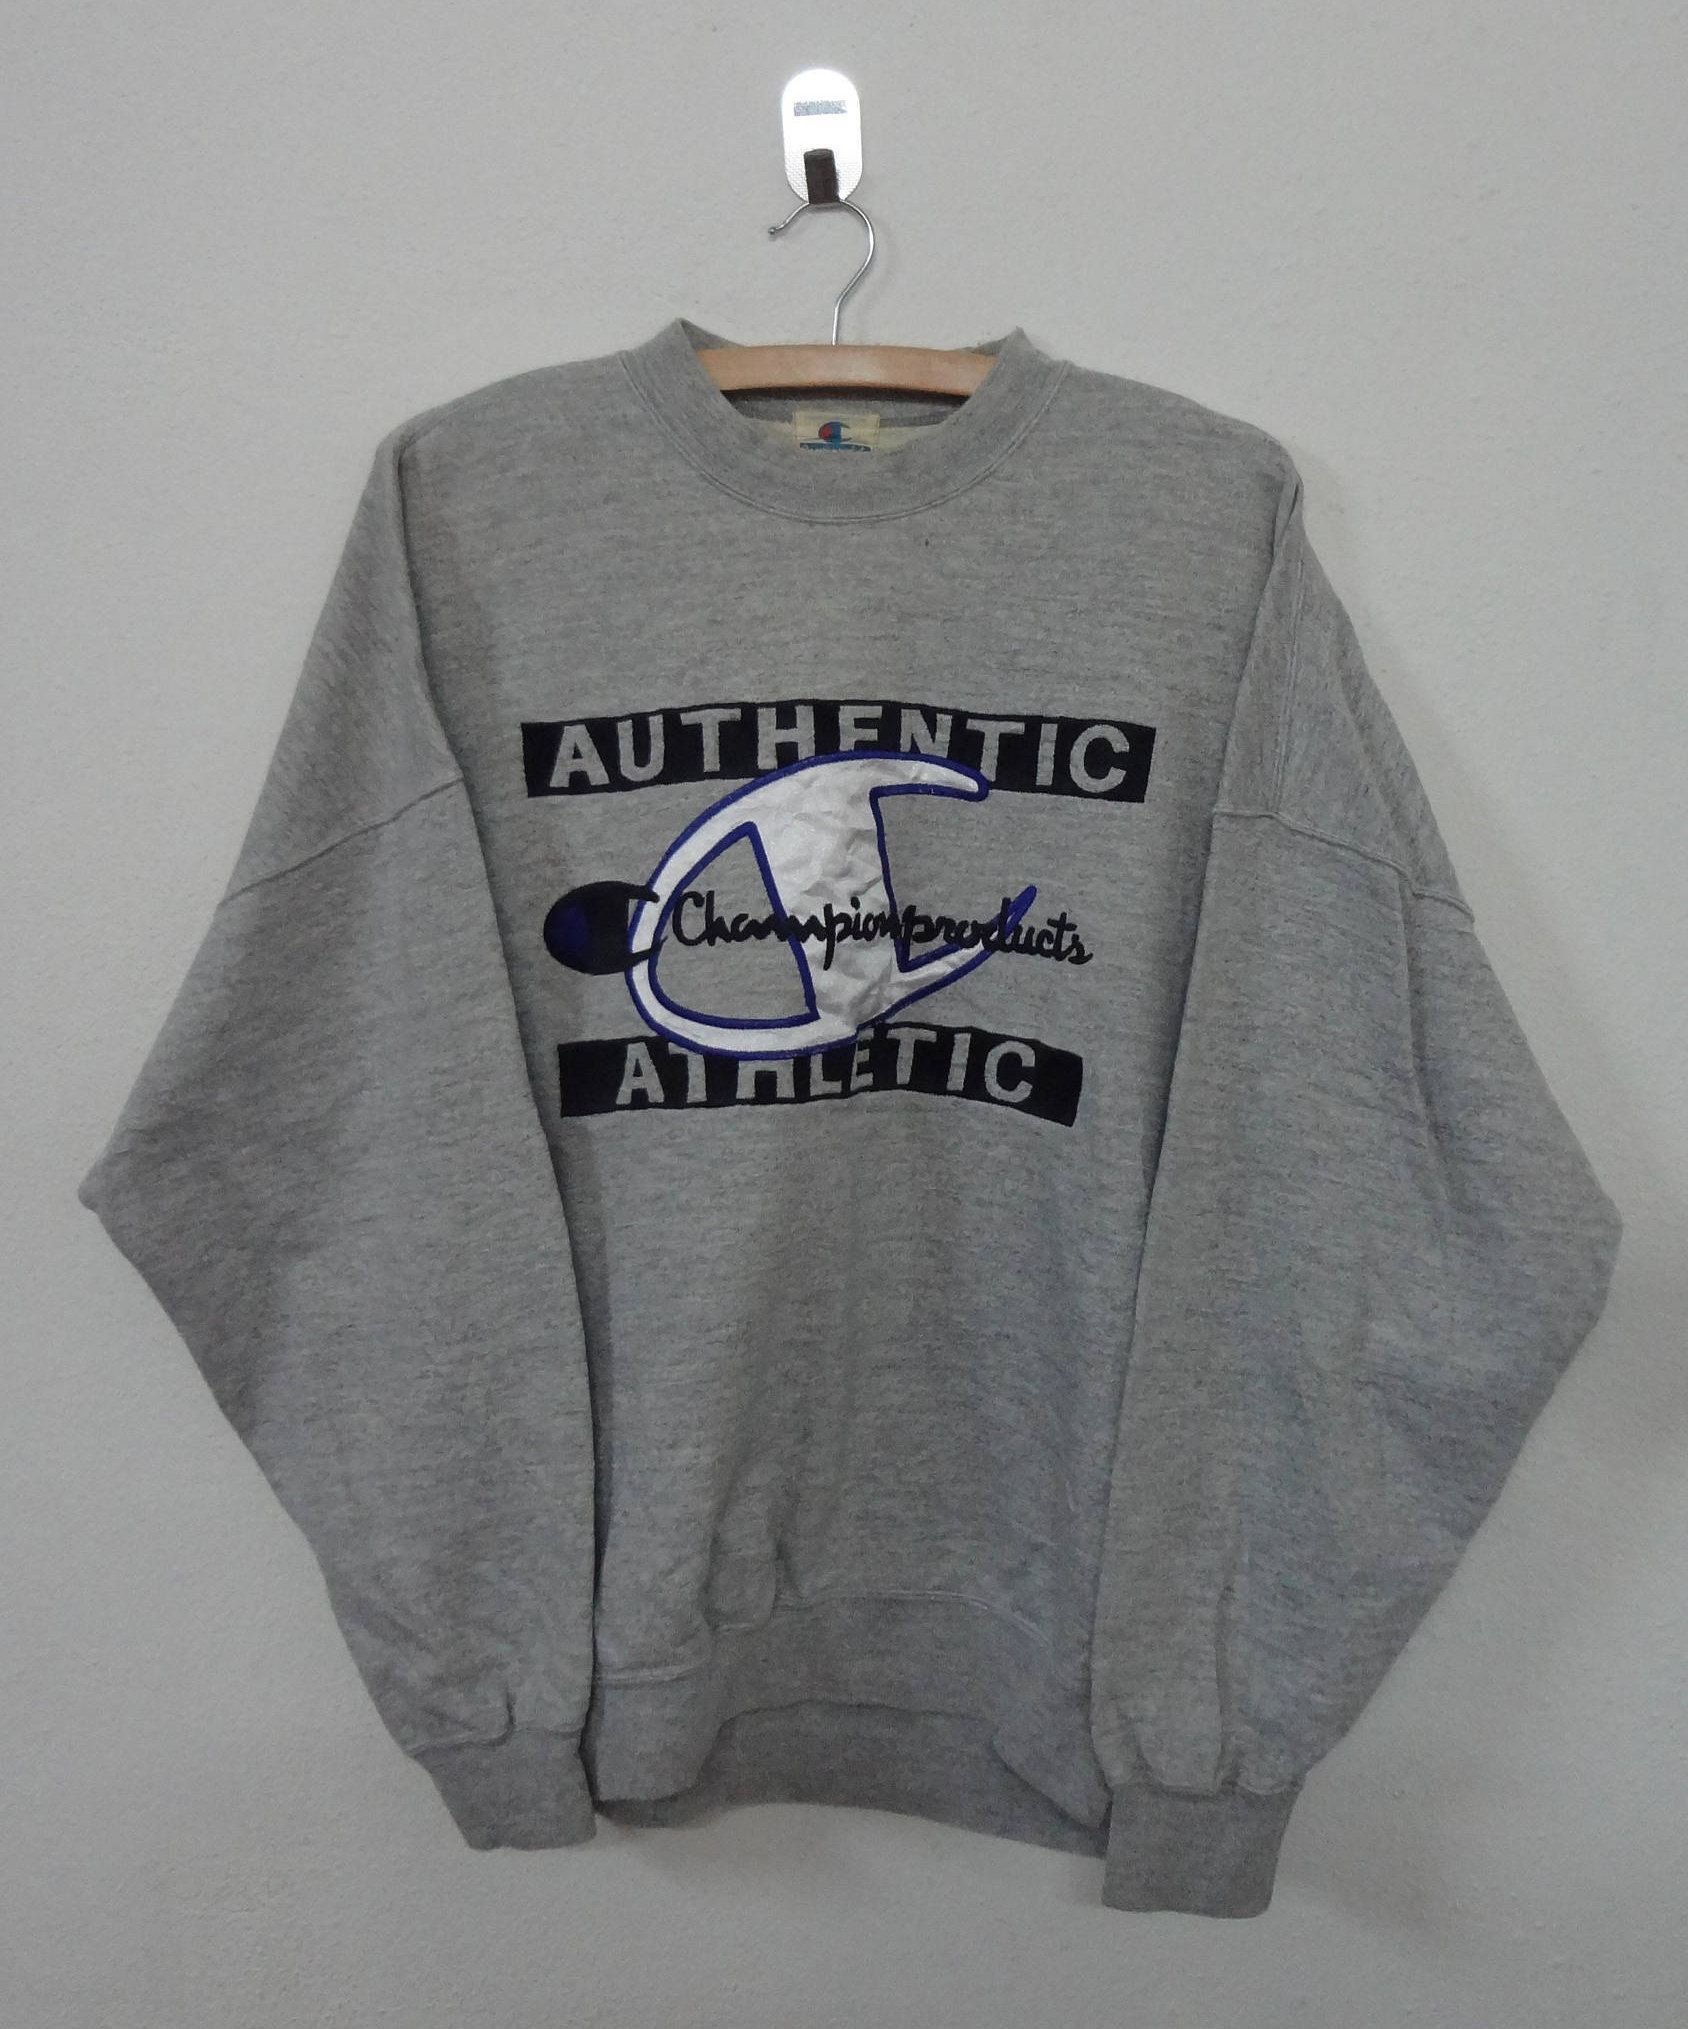 2daaccab7 Vintage 90 s Champion Sweatshirt Champion Products USA Spellout Big Logo  Embroidery Pullover Jumper Sweater Hip Hop Swag by NotreShop on Etsy